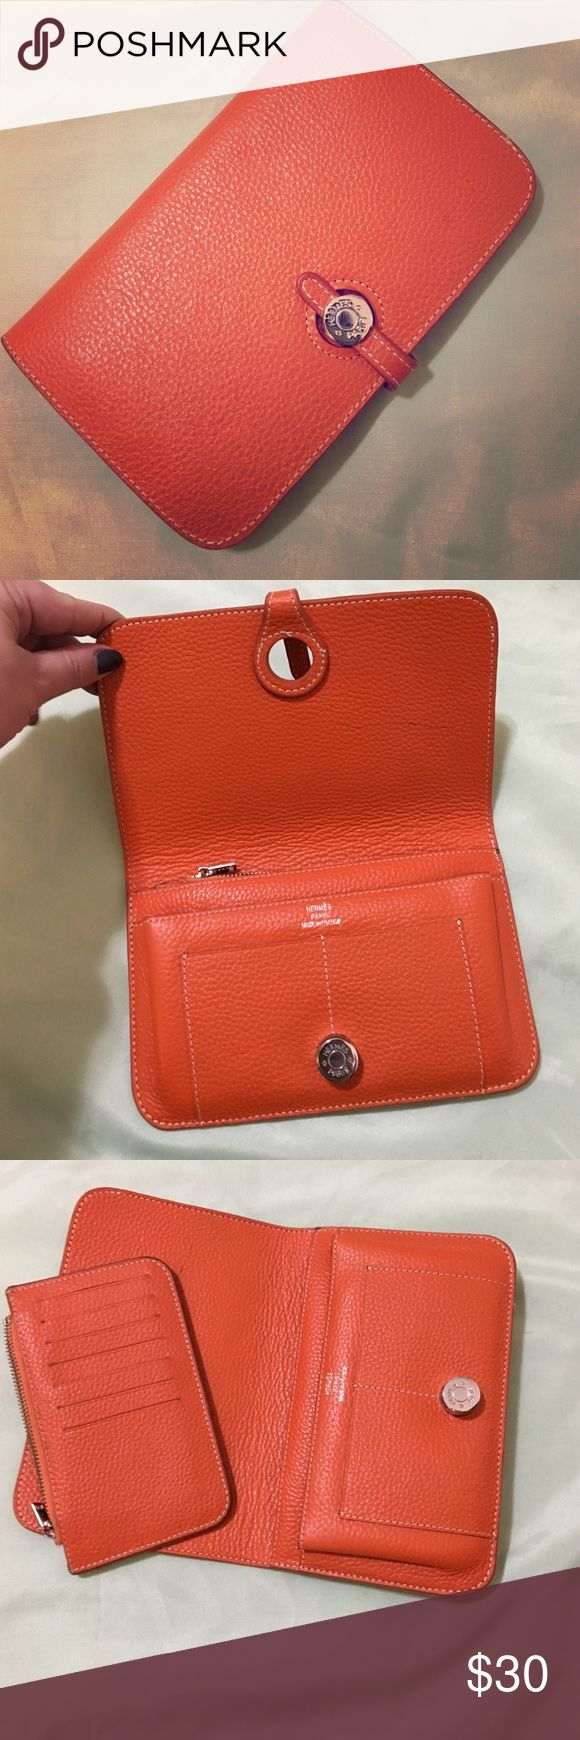 Hermes wallet Orange leather Hermes wallet with removable coin purse! Fabulous condition. Hermes Bags Wallets